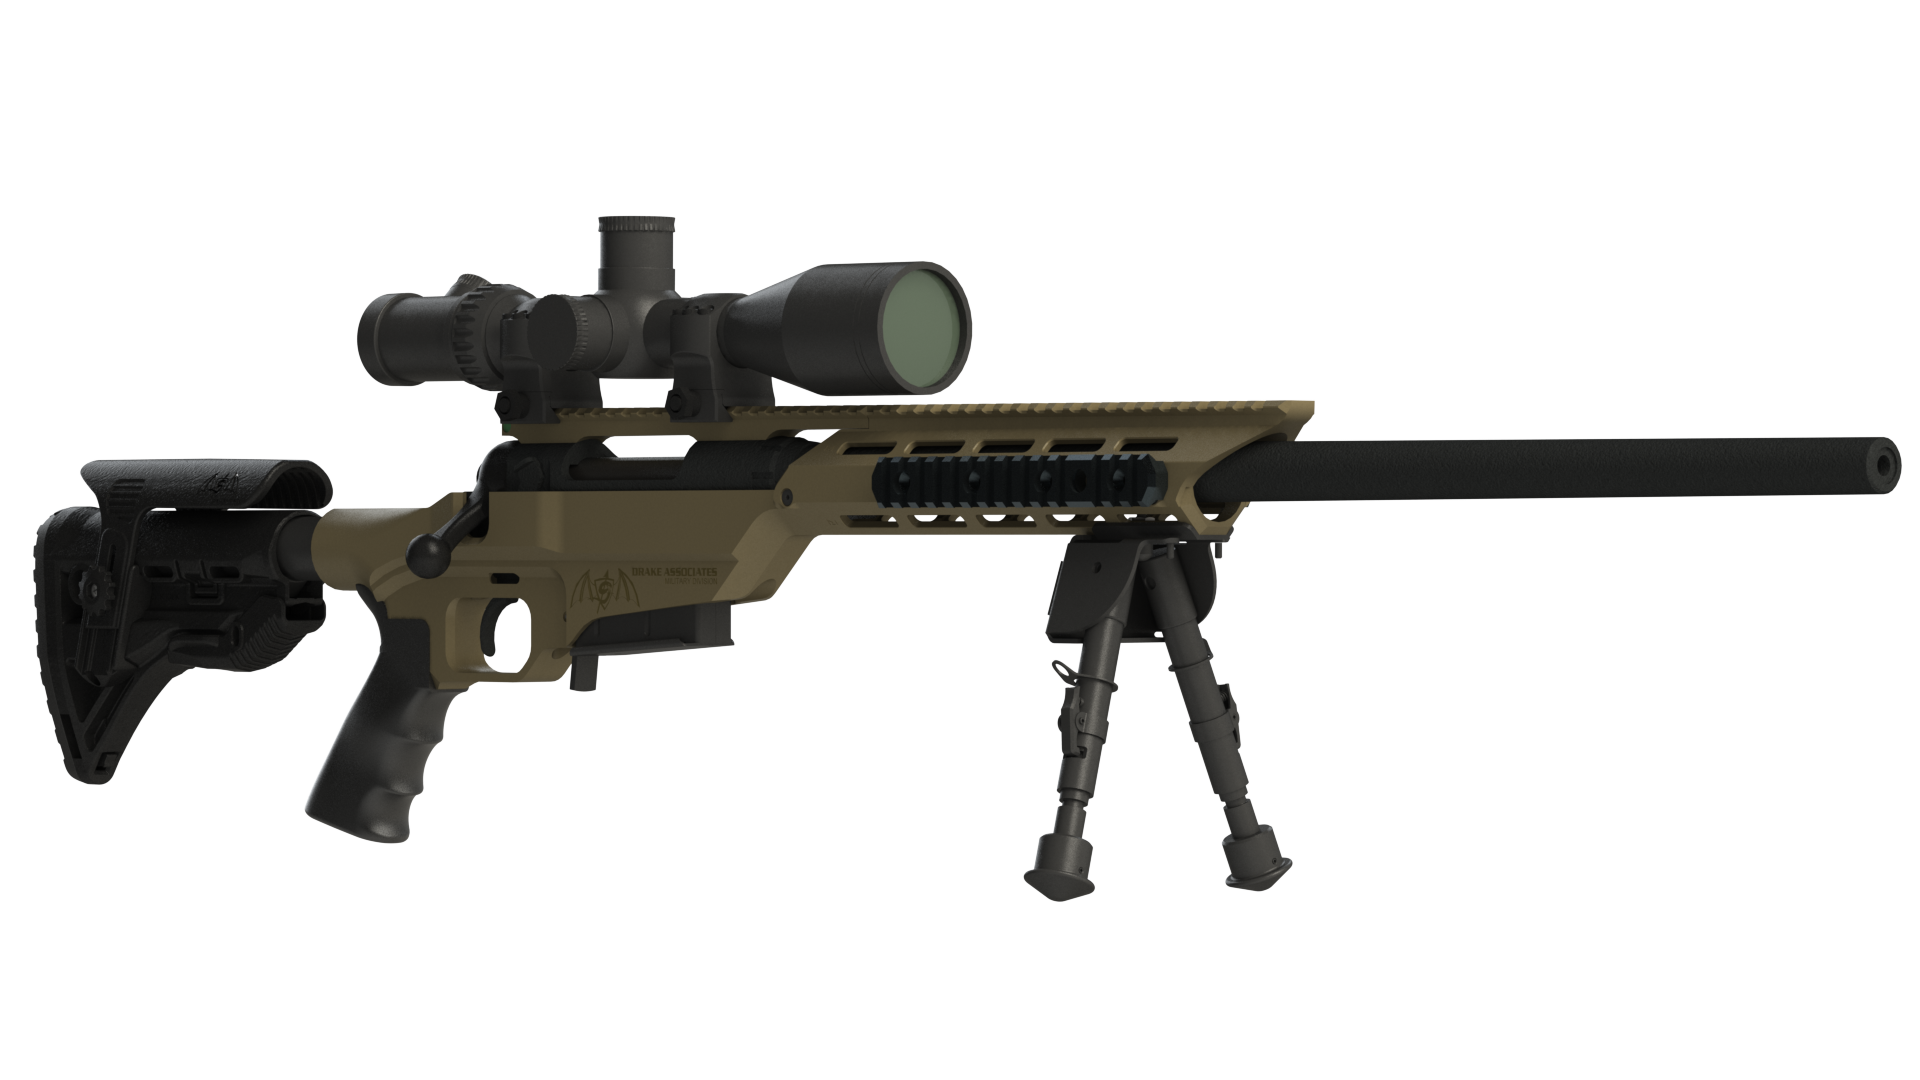 Transparent rifle. Sniper png images free